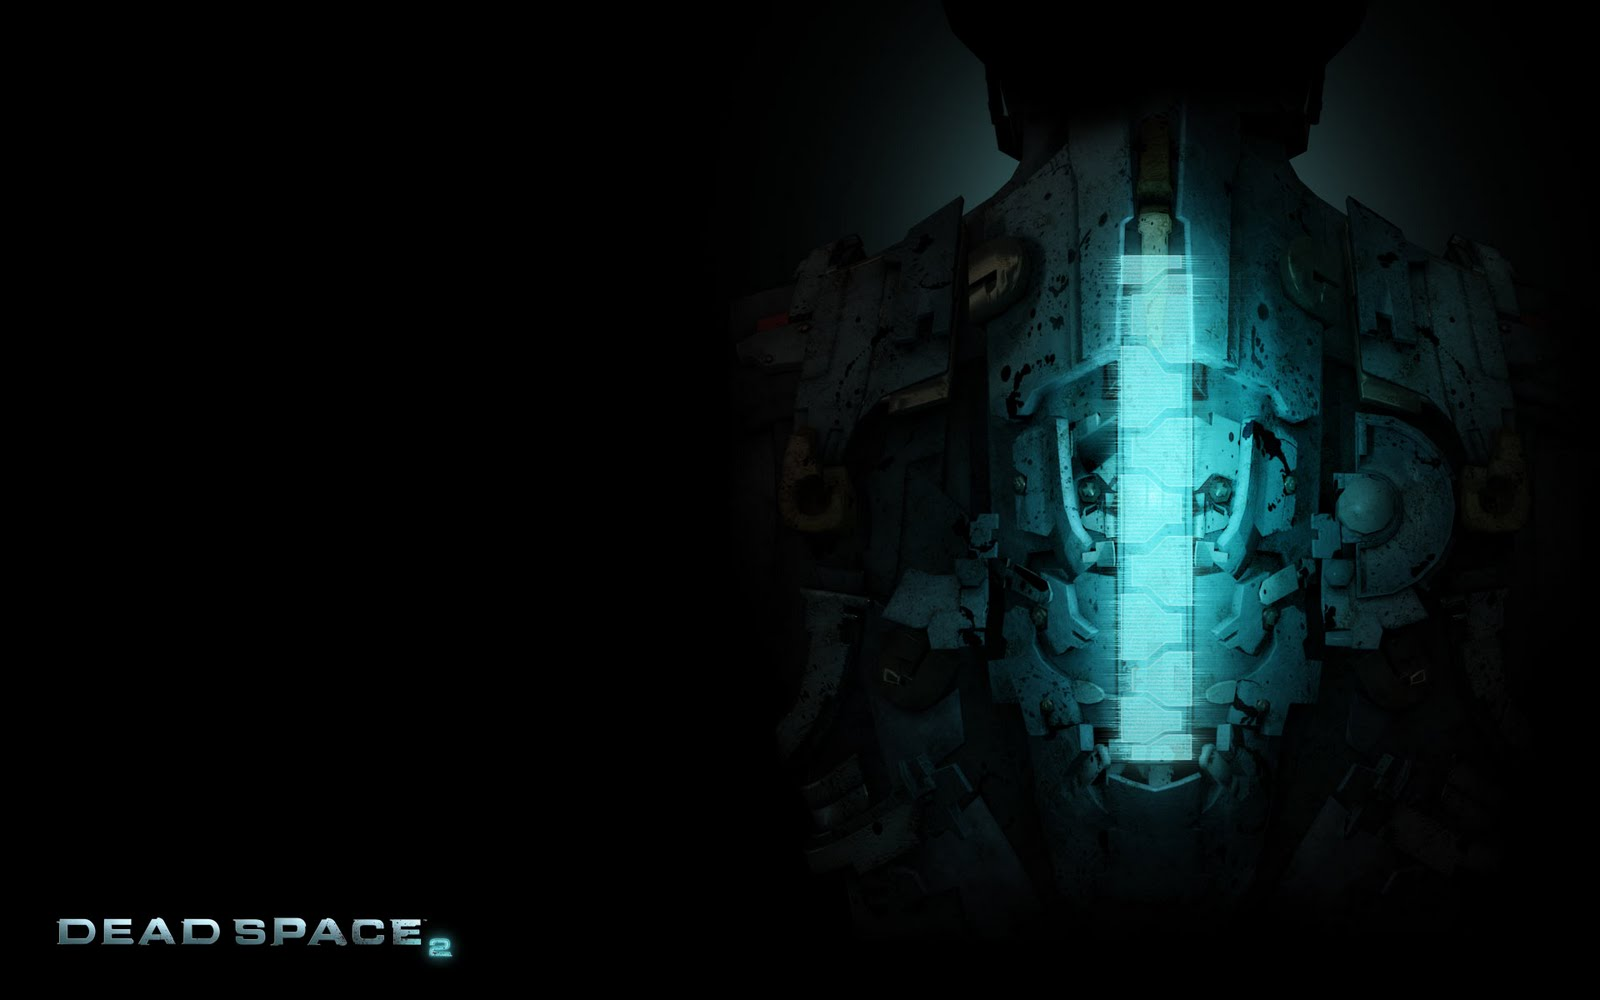 Personal Gaming: Four Dead Space 2 HD Wallpapers